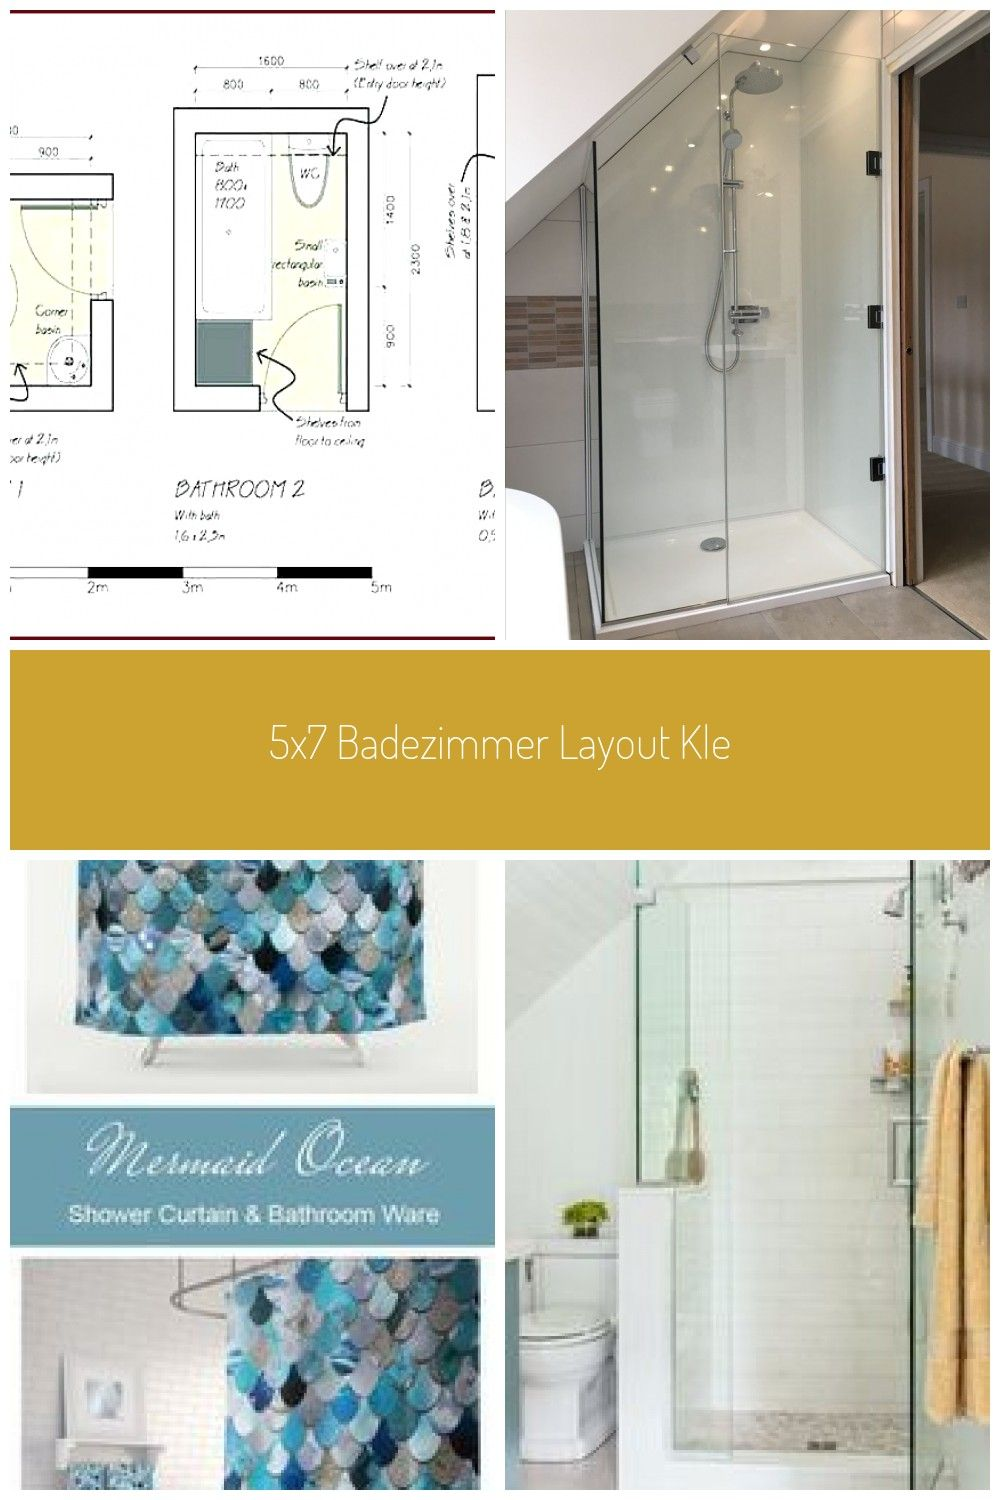 5x7 Badezimmer Layout Kleine Badezimmer Layout Ideen Badezimmer Plane Badezimmer Layout G 5x7 Bade In 2020 Subway Tile Showers Mermaid Shower Curtain Shower Tile